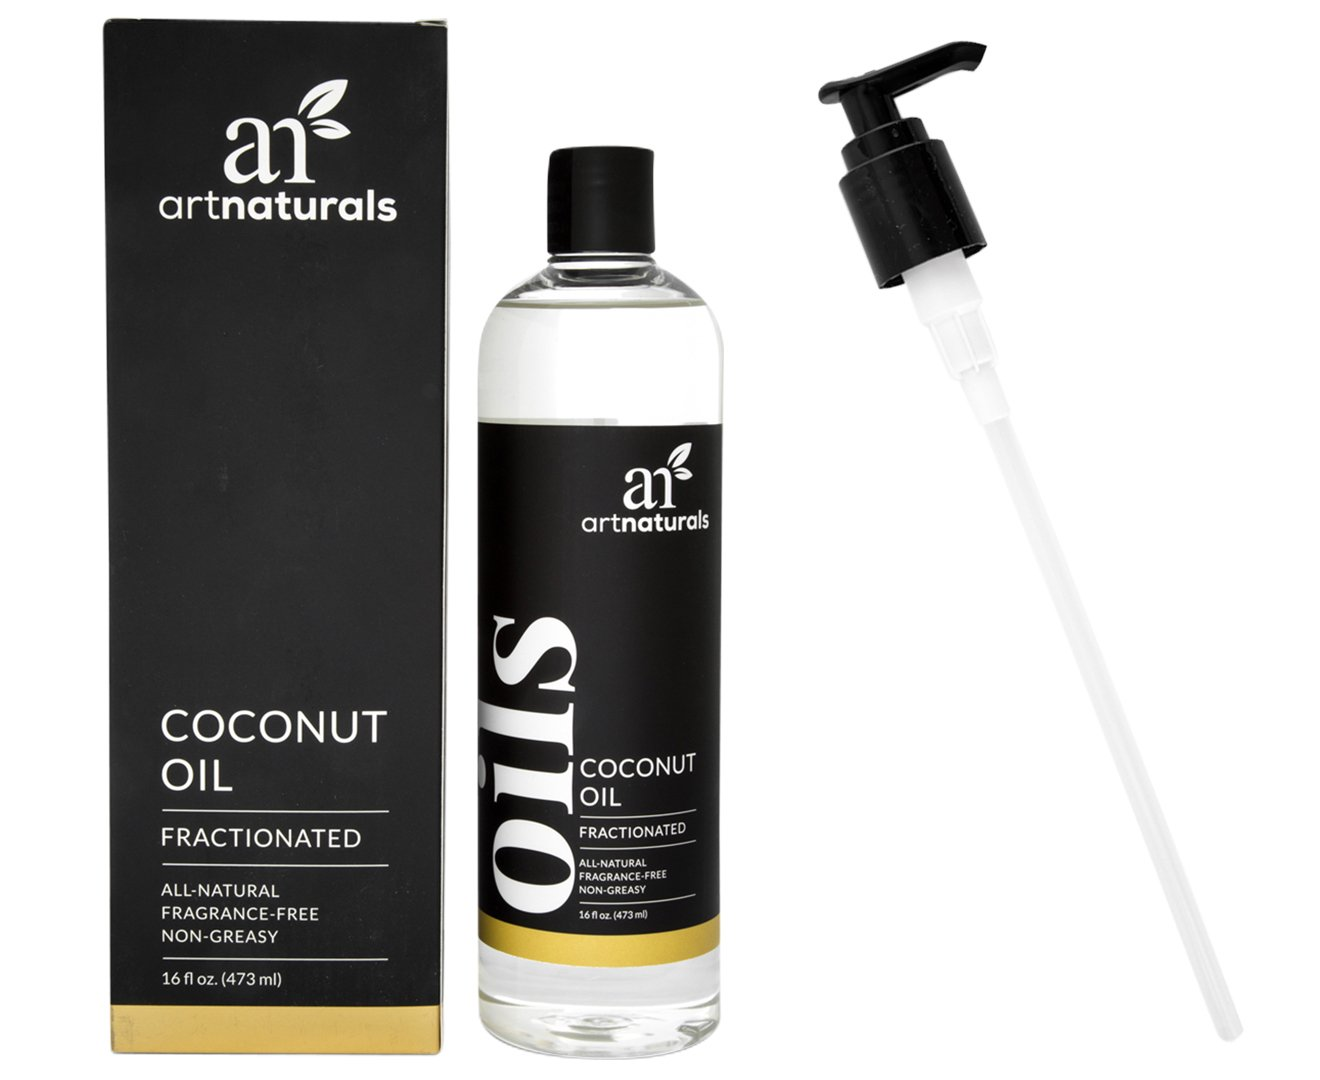 ArtNaturals Premium Fractionated Coconut Oil - 16 oz - Natural and Pure – Therapeutic Grade Carrier and Massage Oil – for Hair and Skin or Diluting Aromatherapy Essential Oils. ANFCO123001-CA